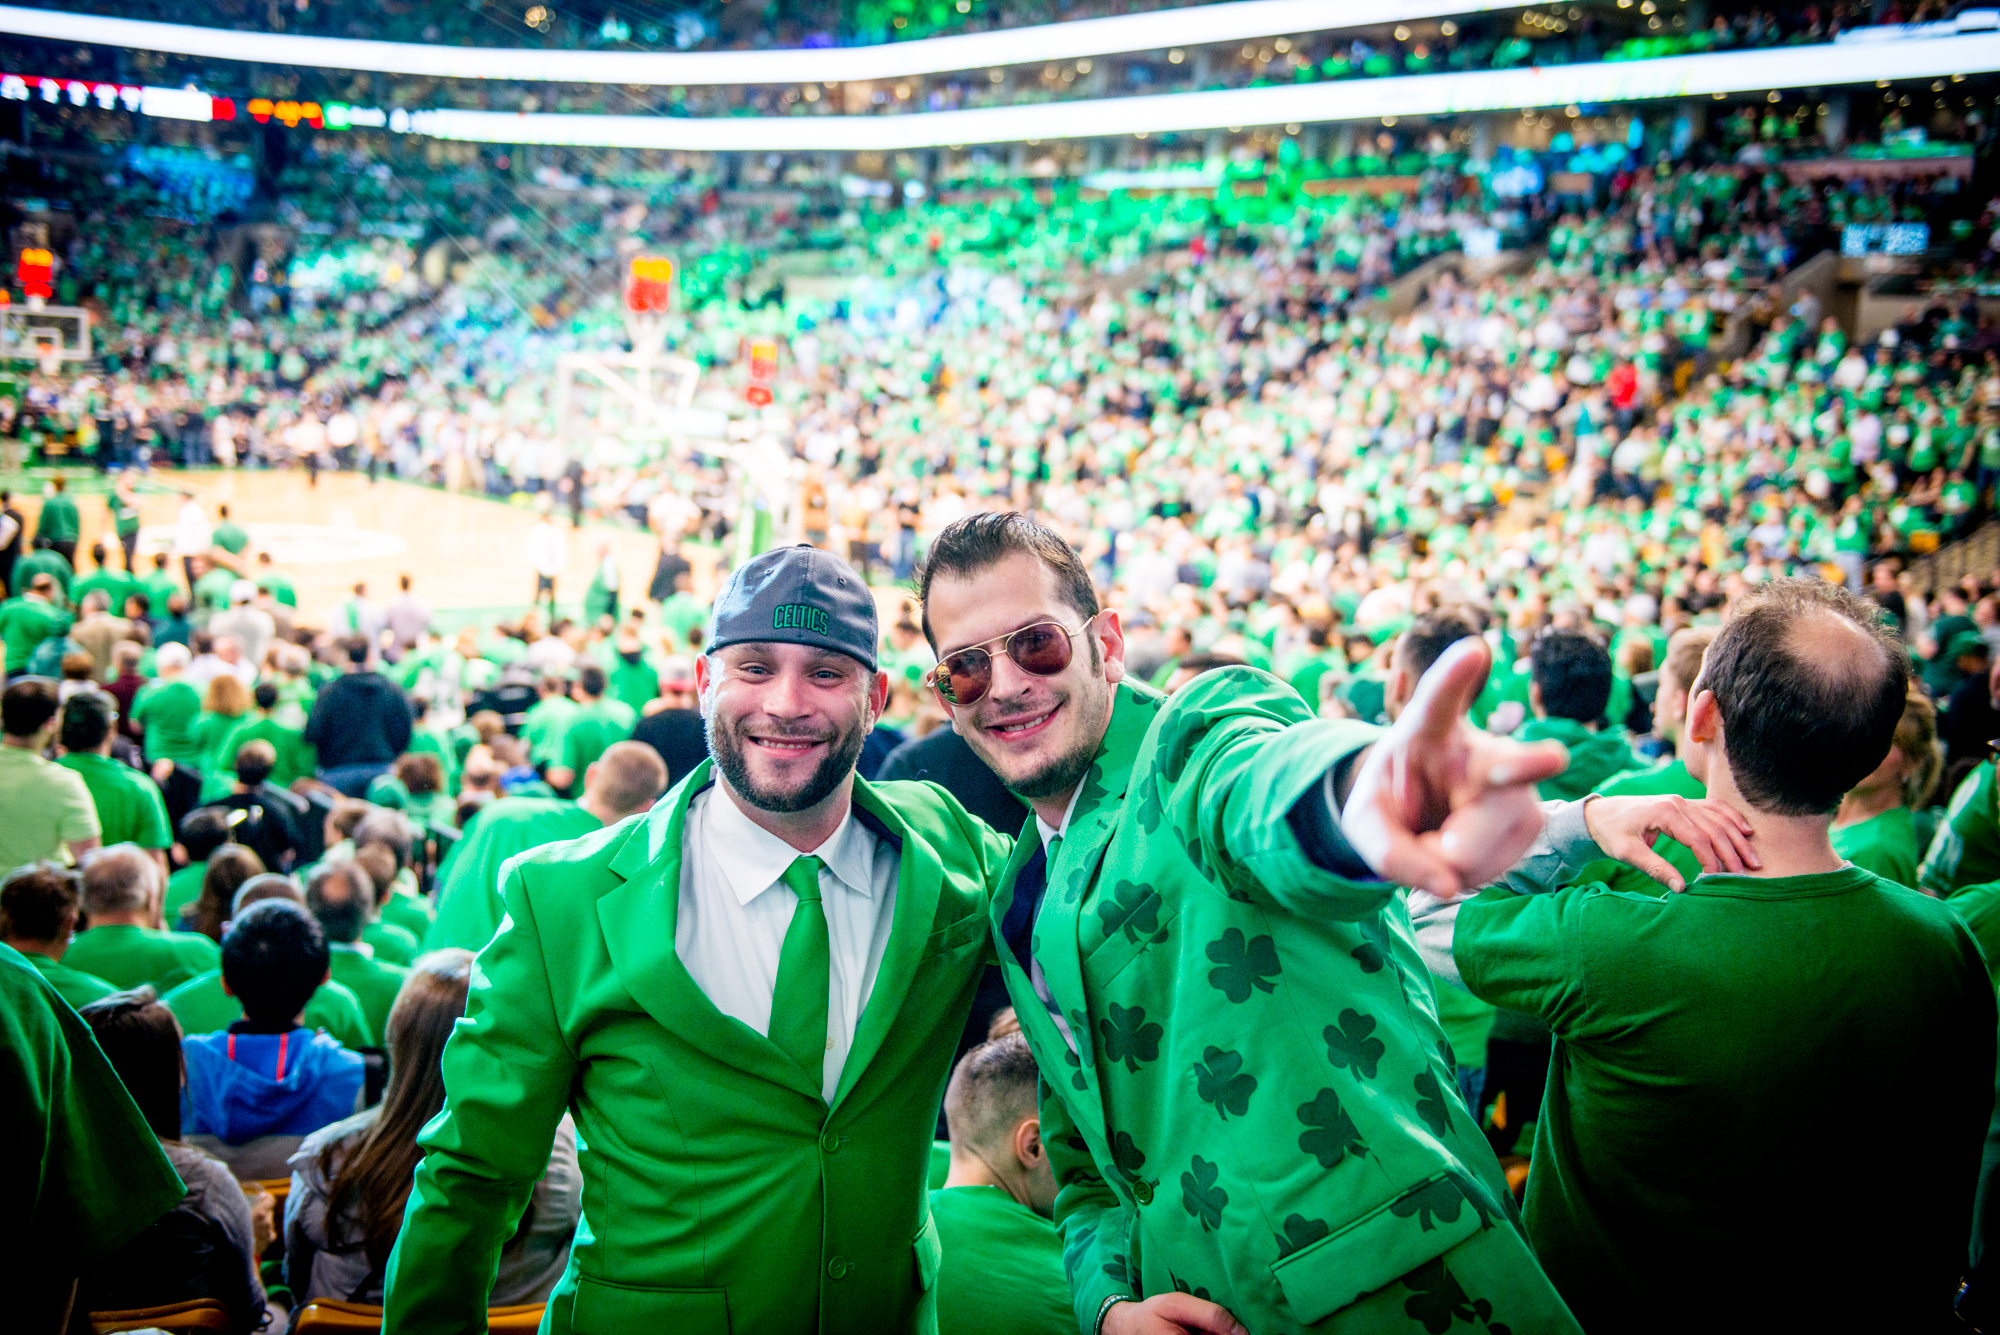 Celtics_Playoff_042916-714.jpg